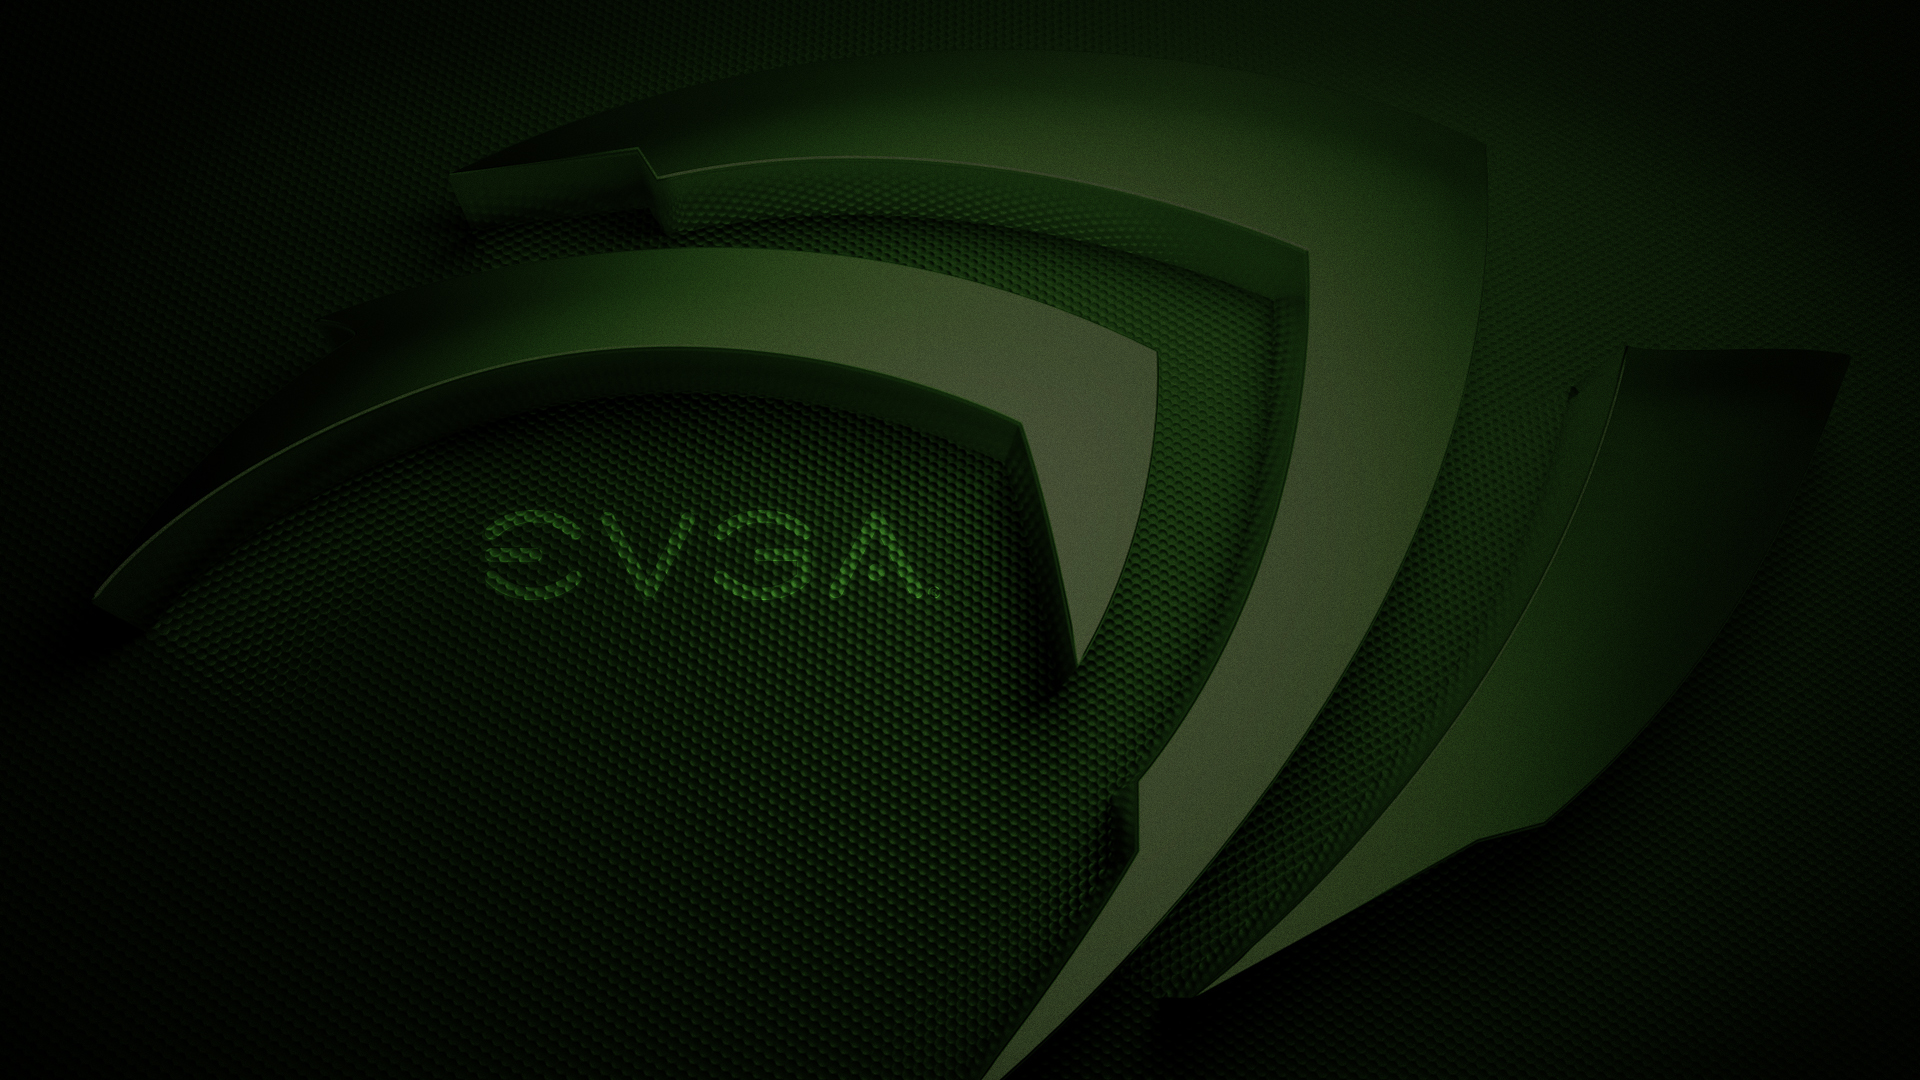 HD EVGA nVidia Green 1920x WallpaperEvga Wallpaper 1080p